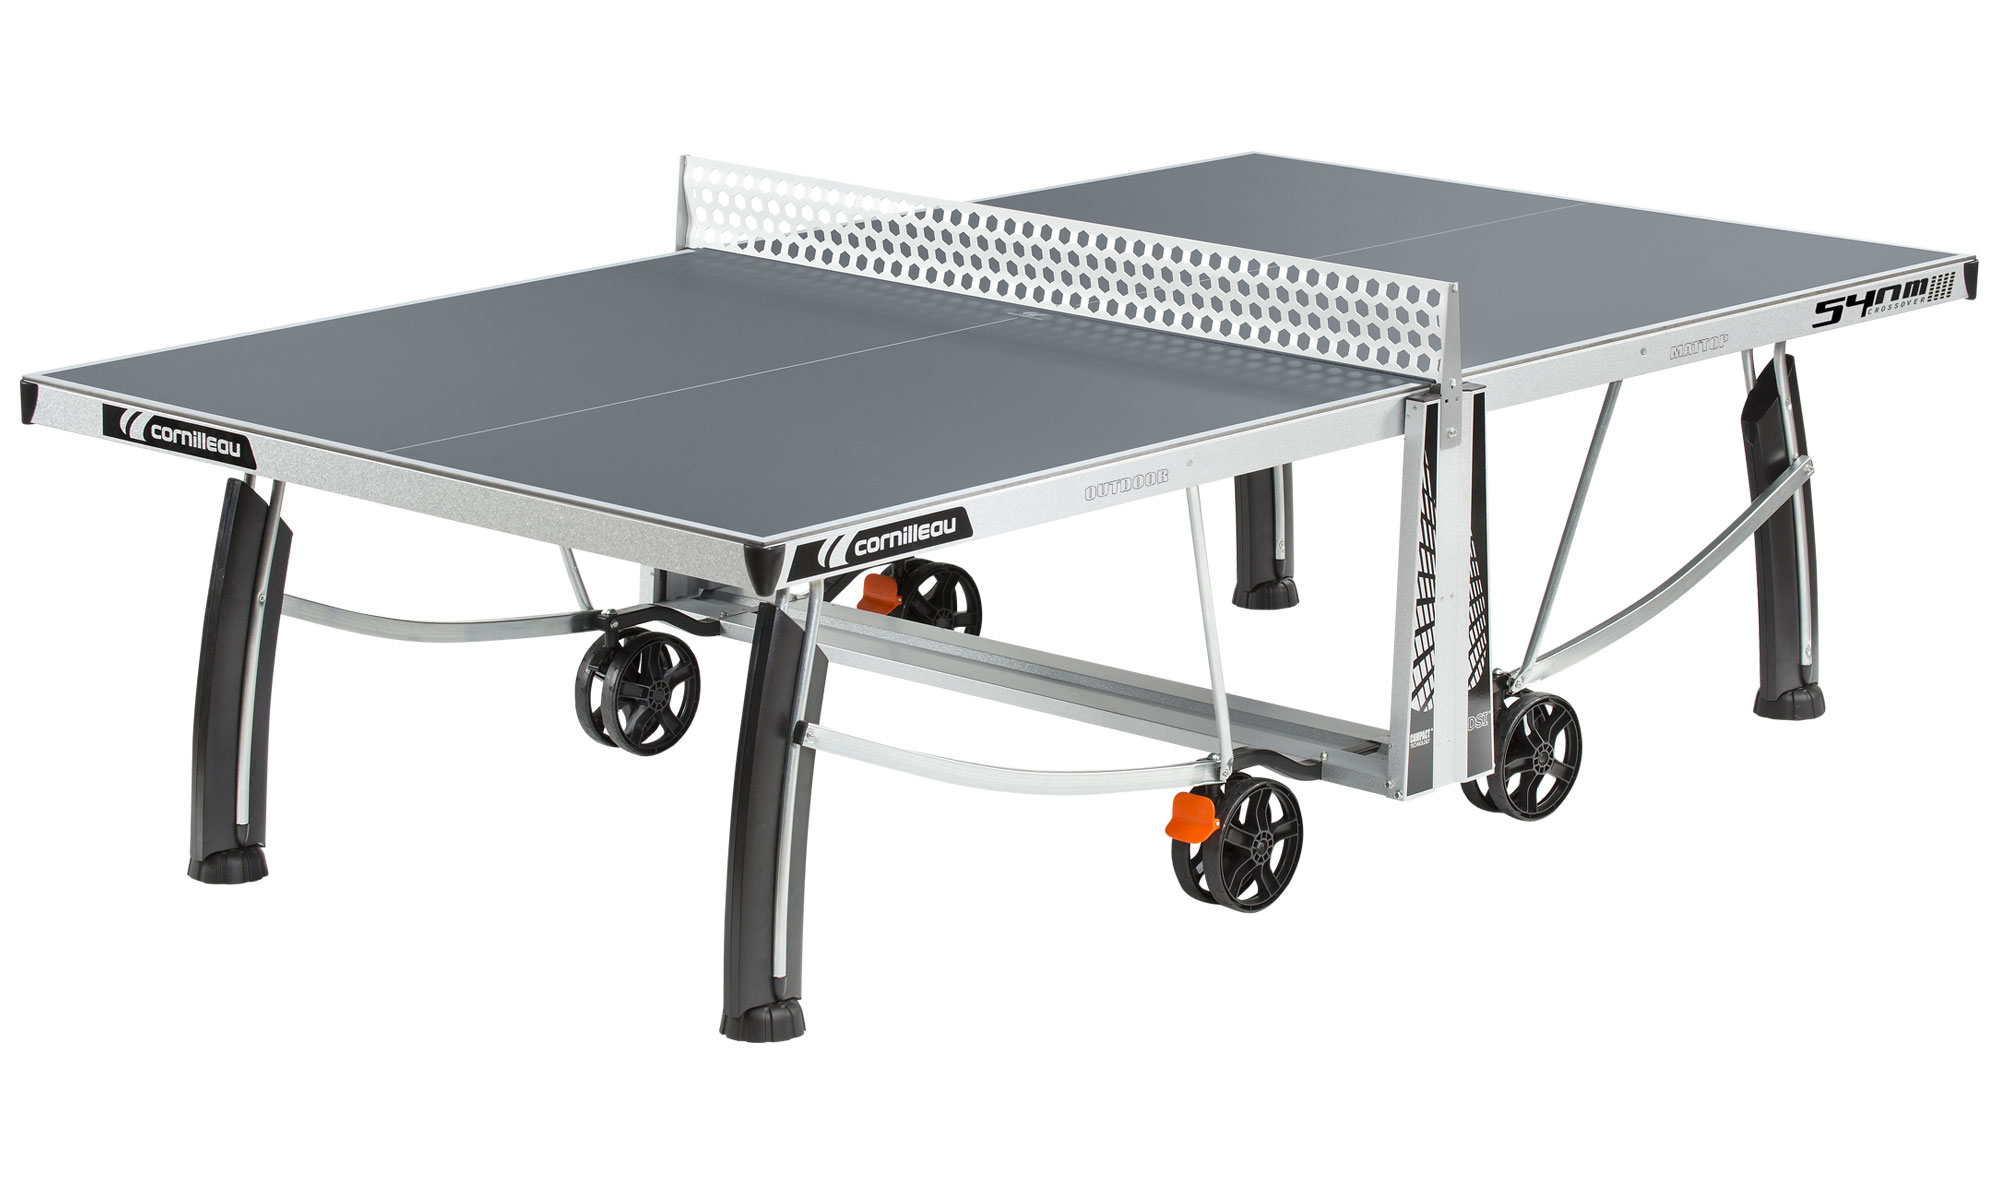 Cornilleau Pro 540m Crossover Outdoor Table Tennis Table